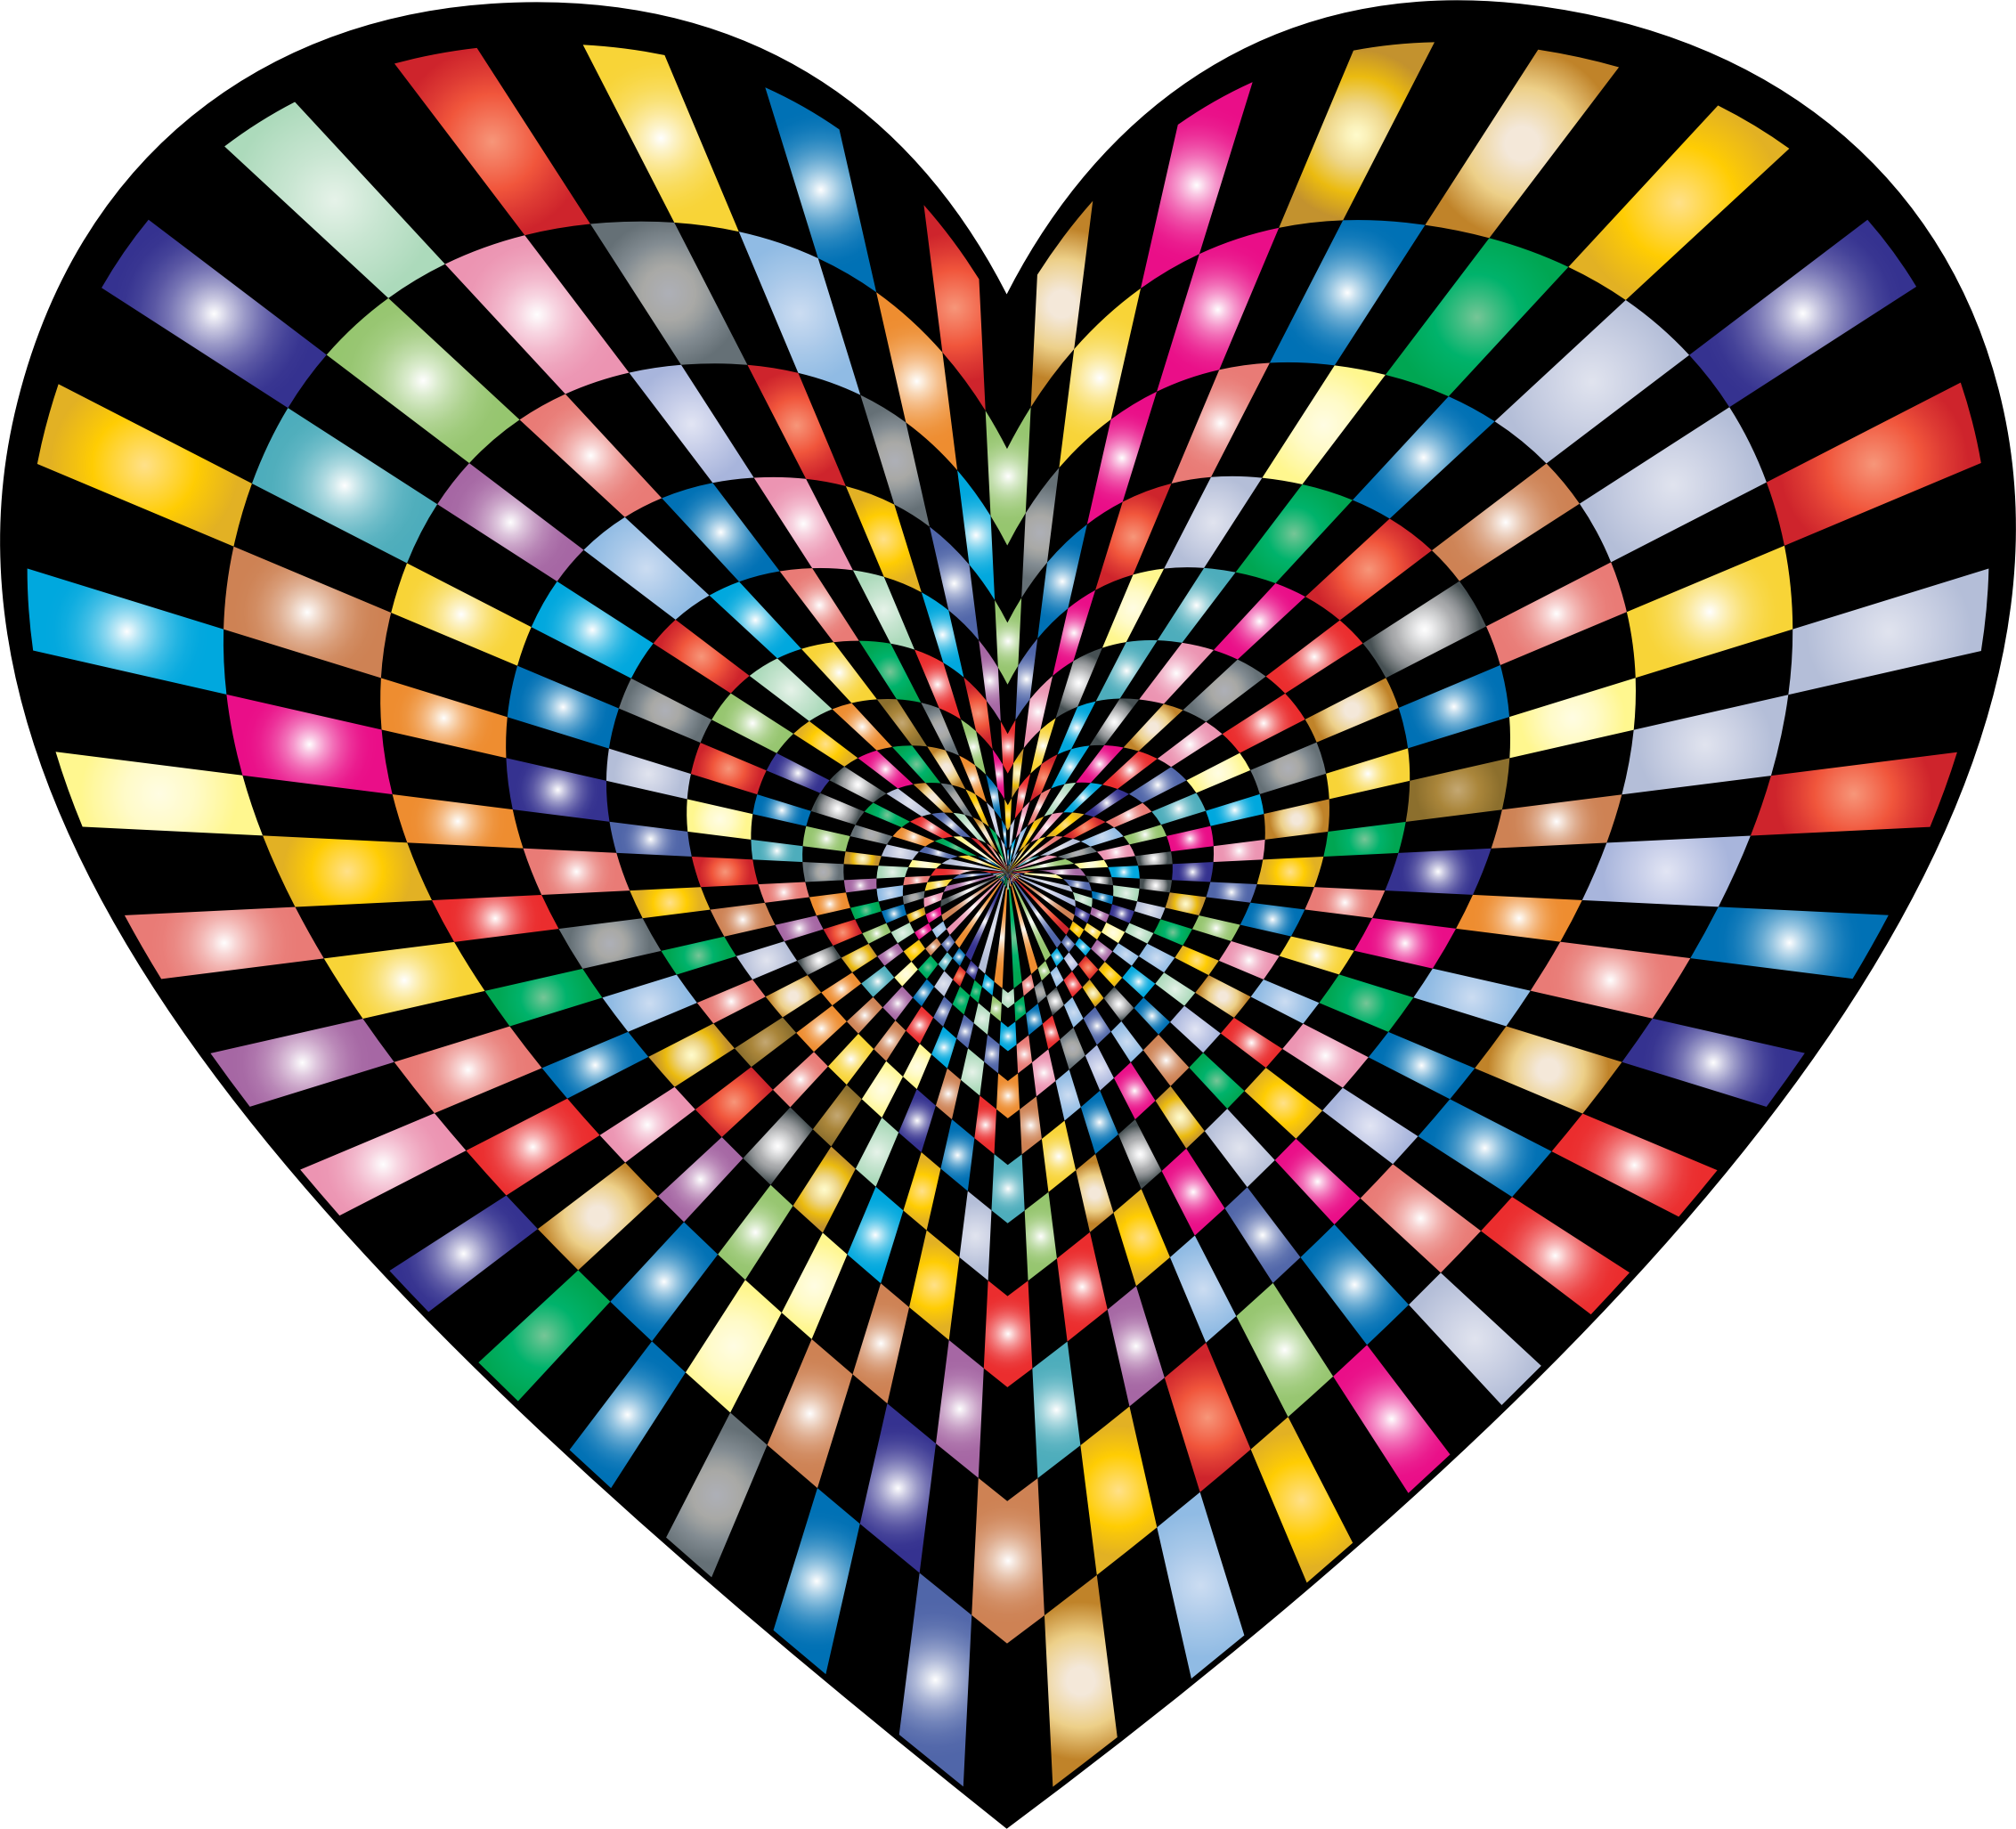 Optical Illusion Checkerboard Heart Prismatic by GDJ